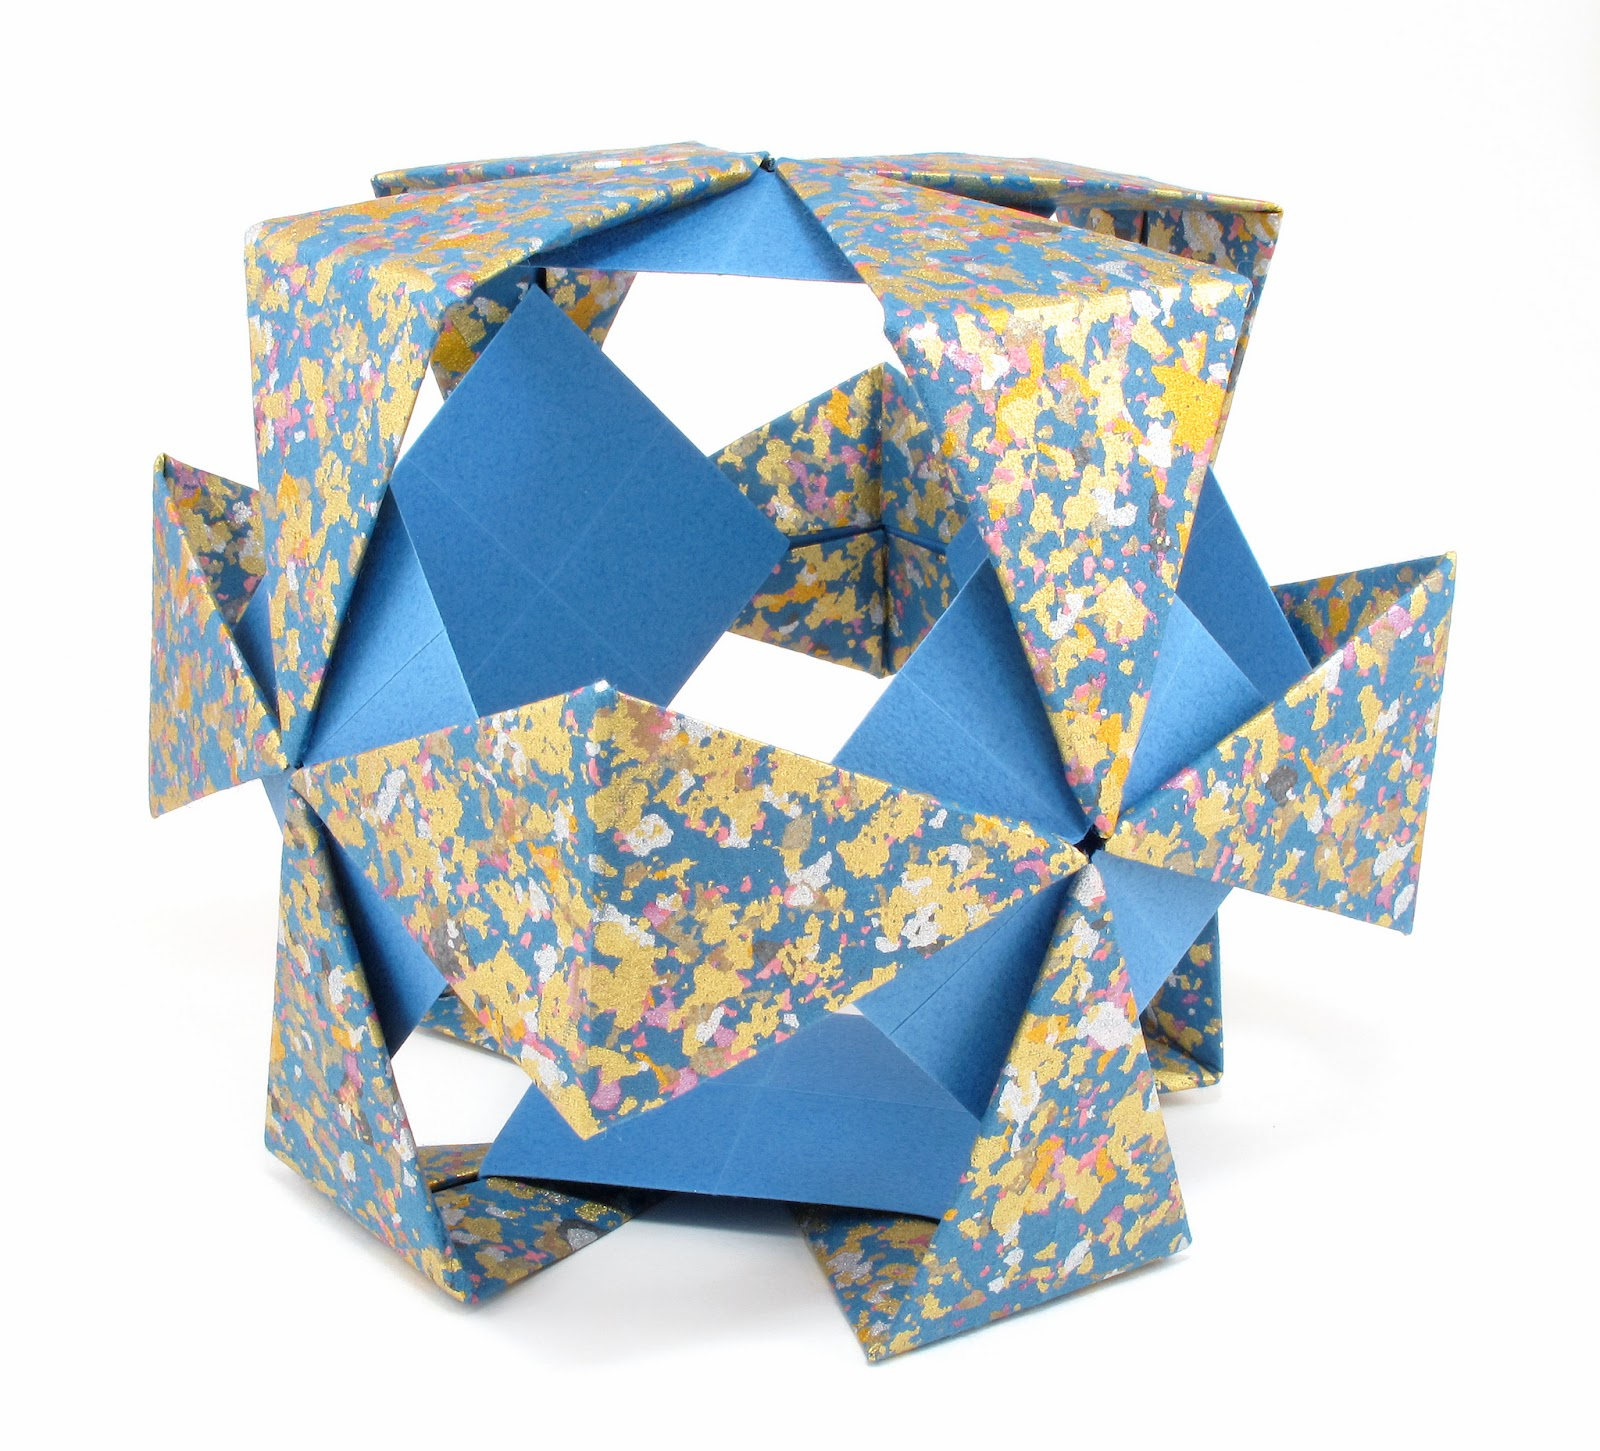 Bead origami origami interlude hollow blue cube my husband took me on an origami paper shopping spree for my christmas gift last december so i picked out several sheets of beautiful washi paper jeuxipadfo Image collections